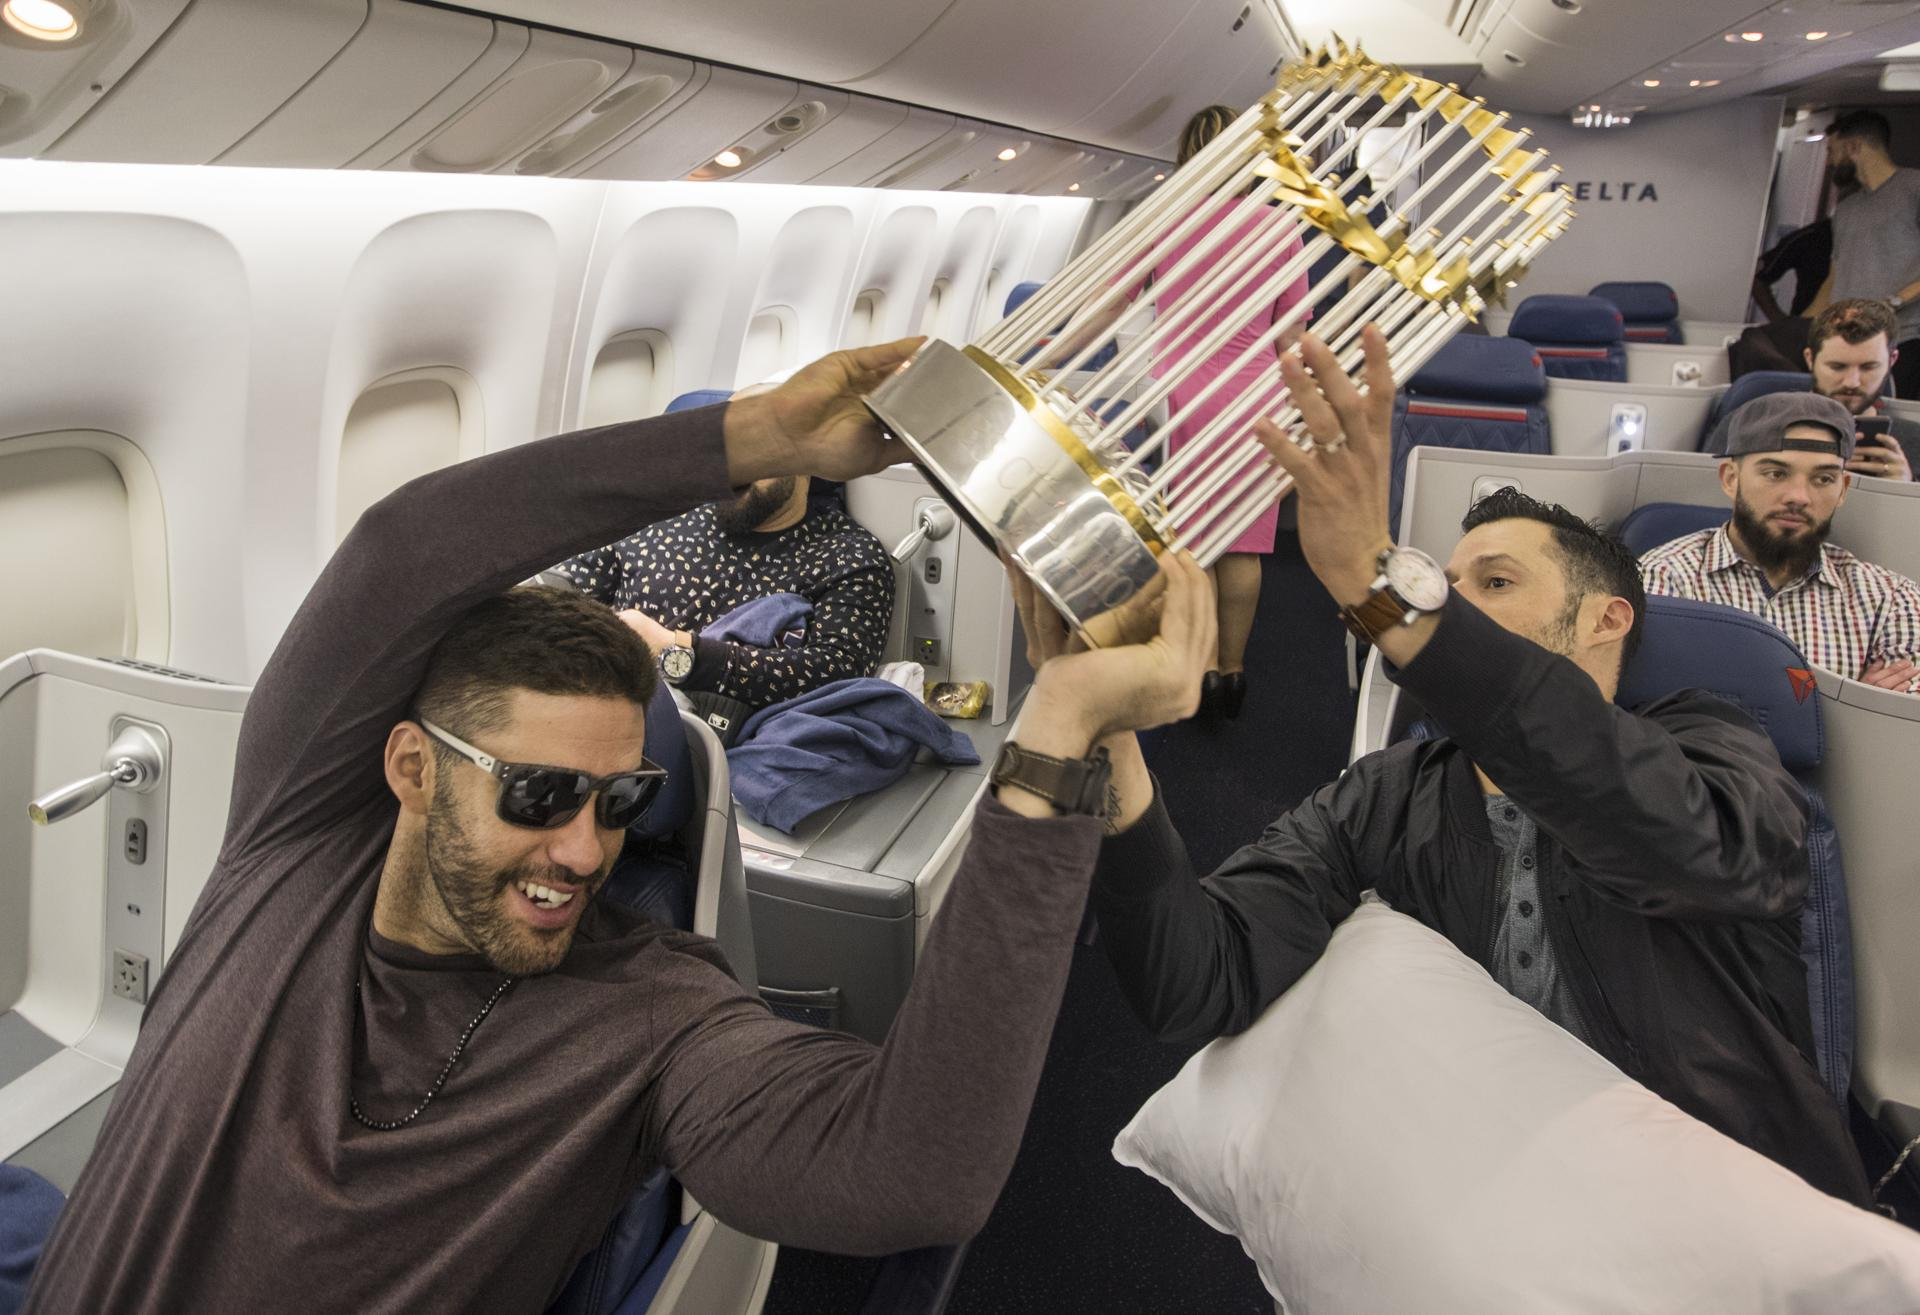 J.D. Martinez handed the World Series trophy off to Joe Kelly on Monday's flight home from Los Angeles.